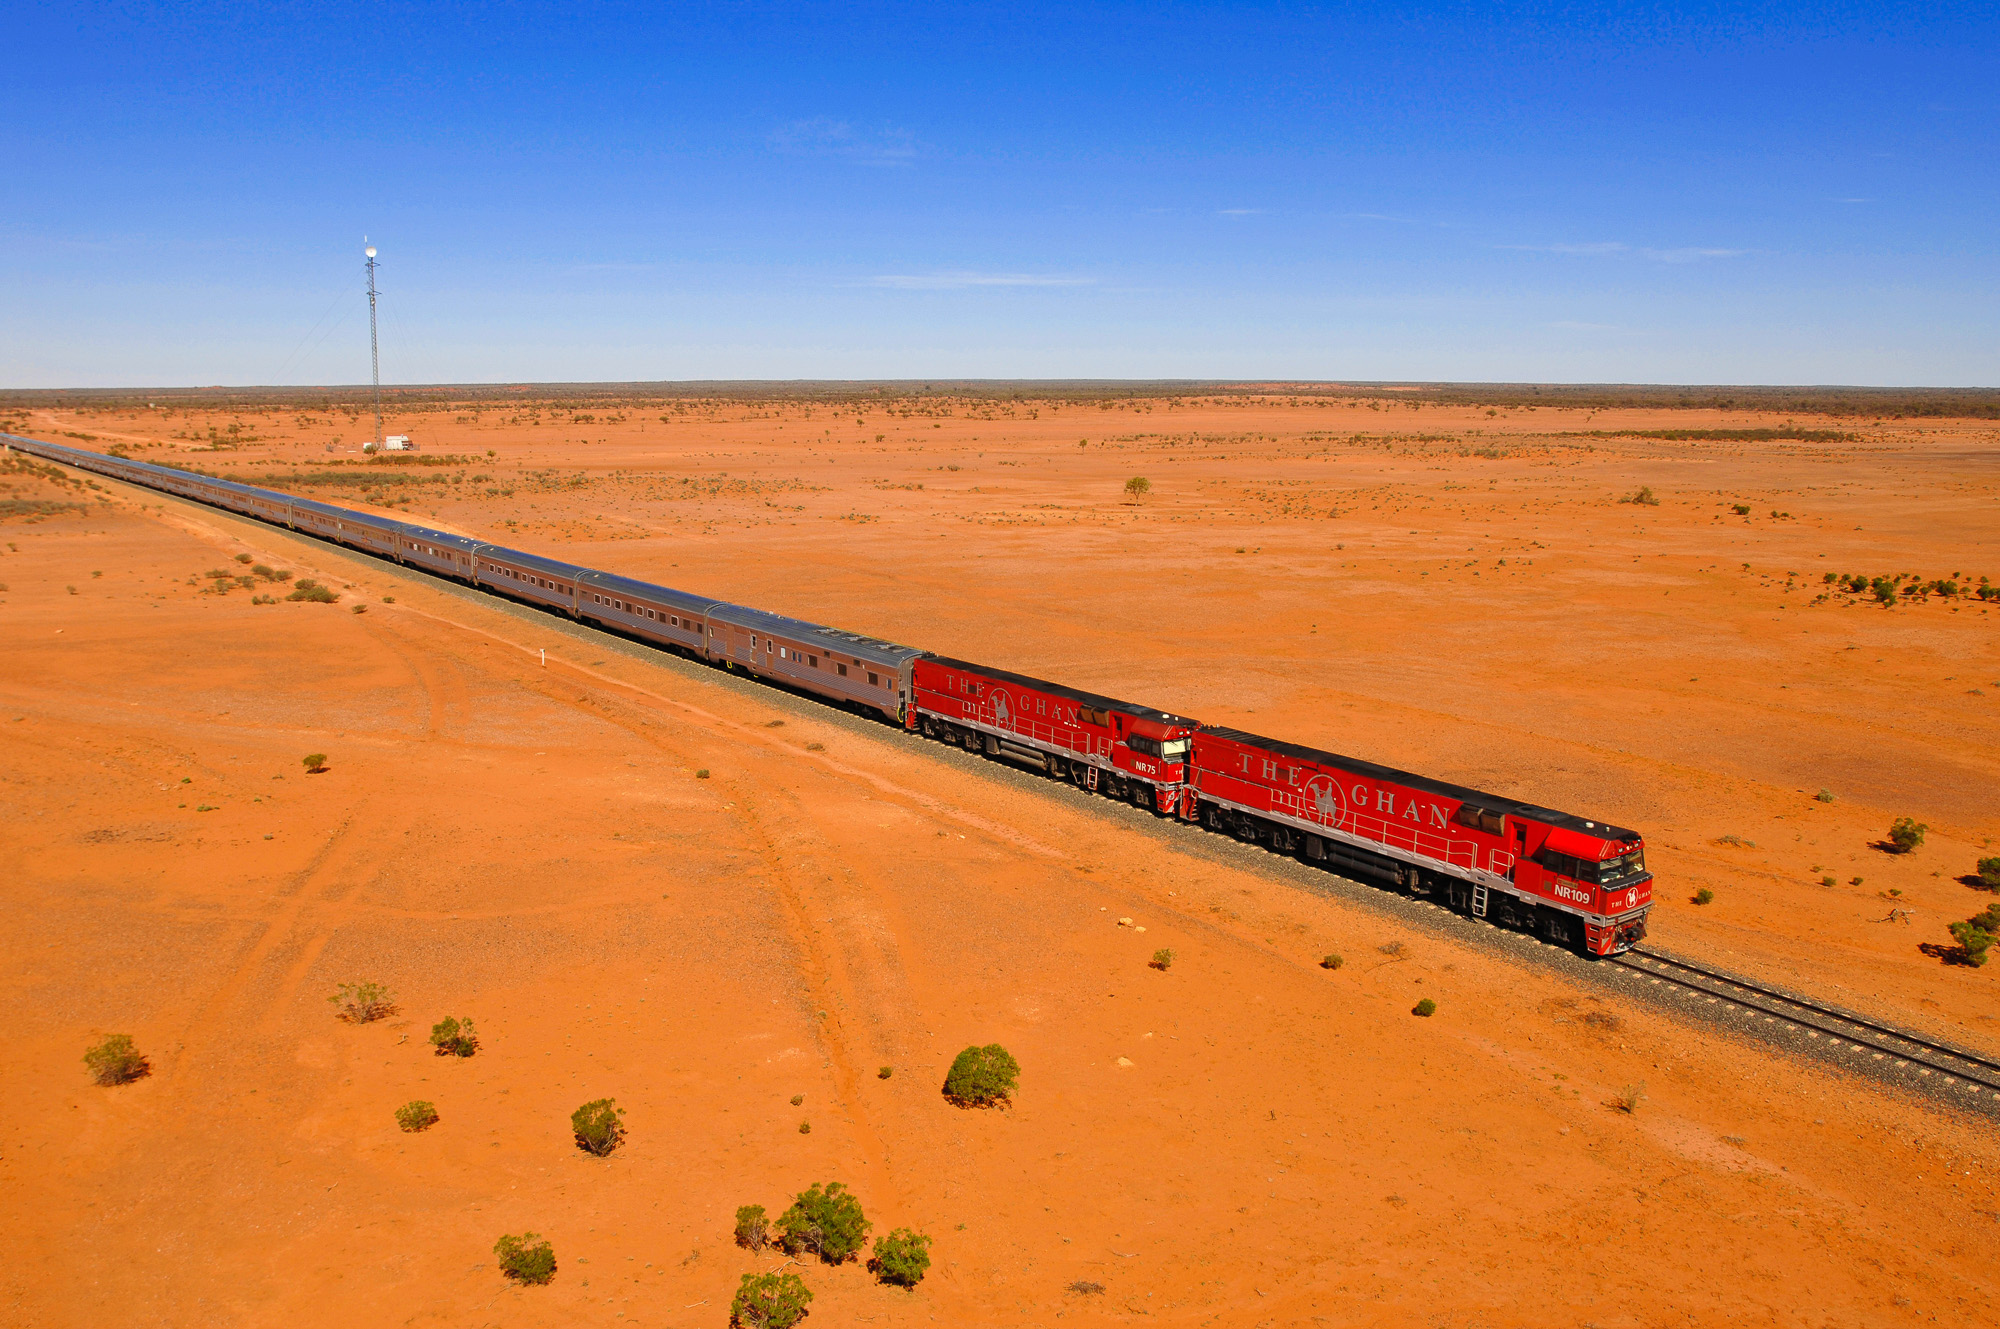 The Ghan Expedition